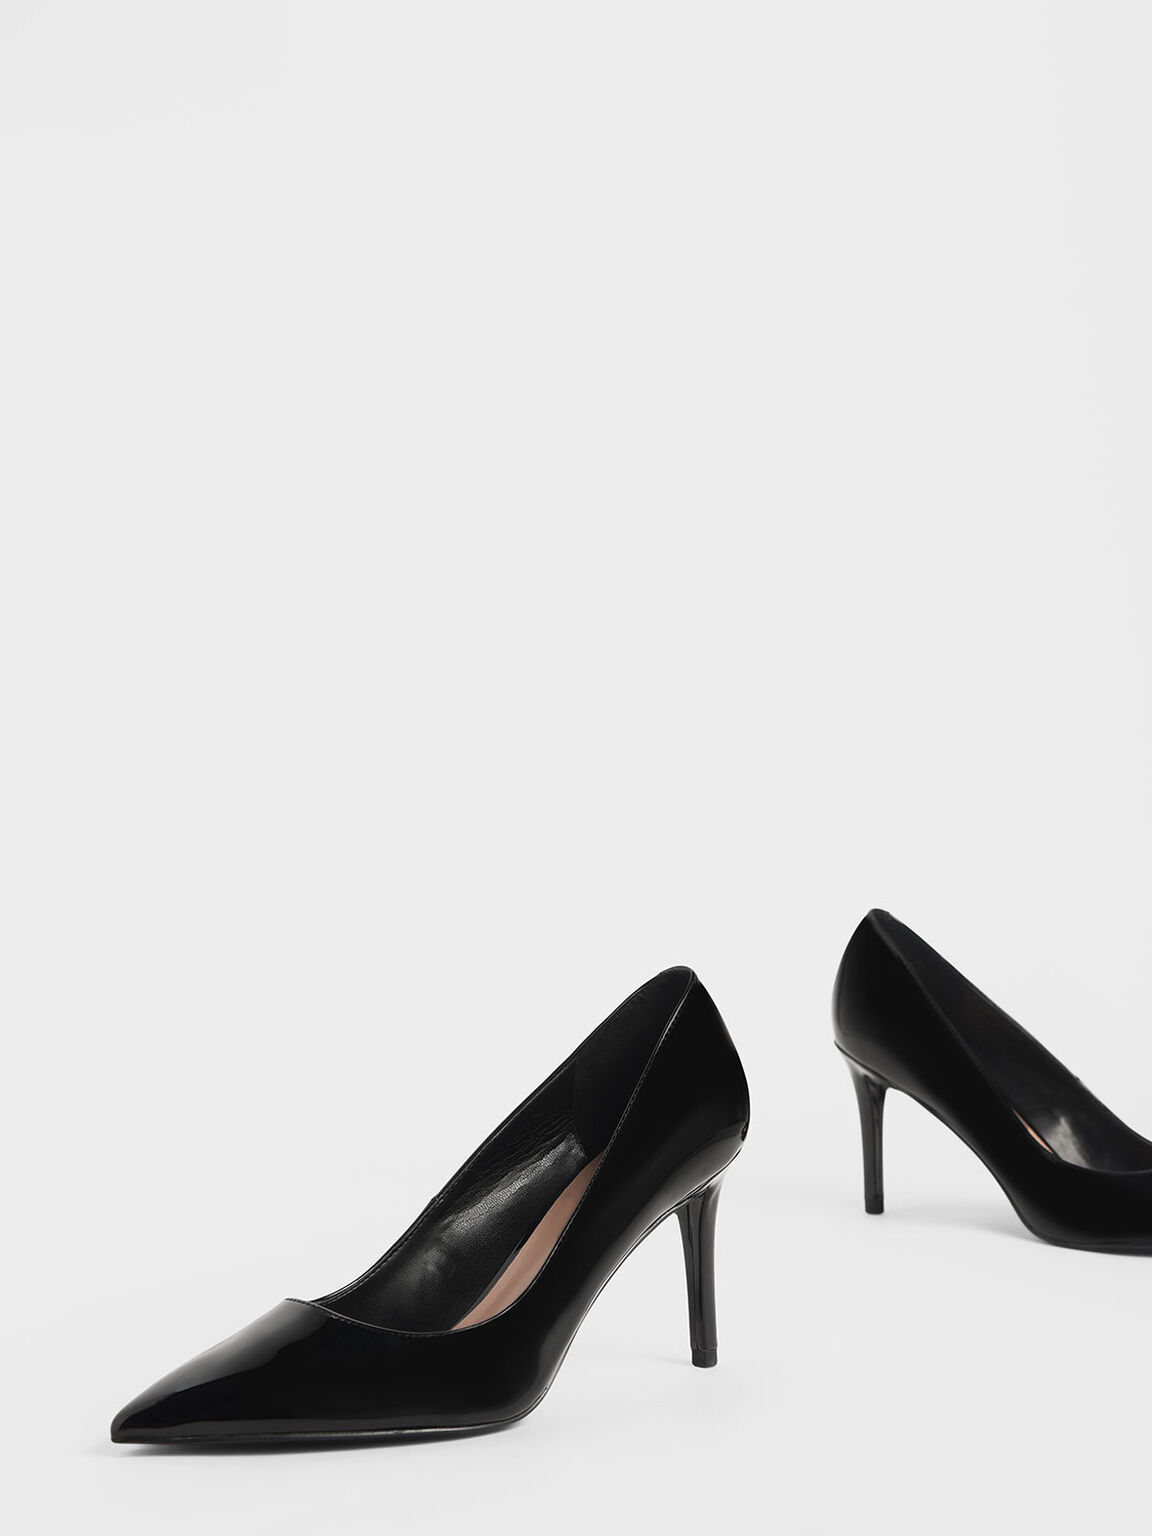 Classic Pointed Toe Patent Pumps, Black, hi-res